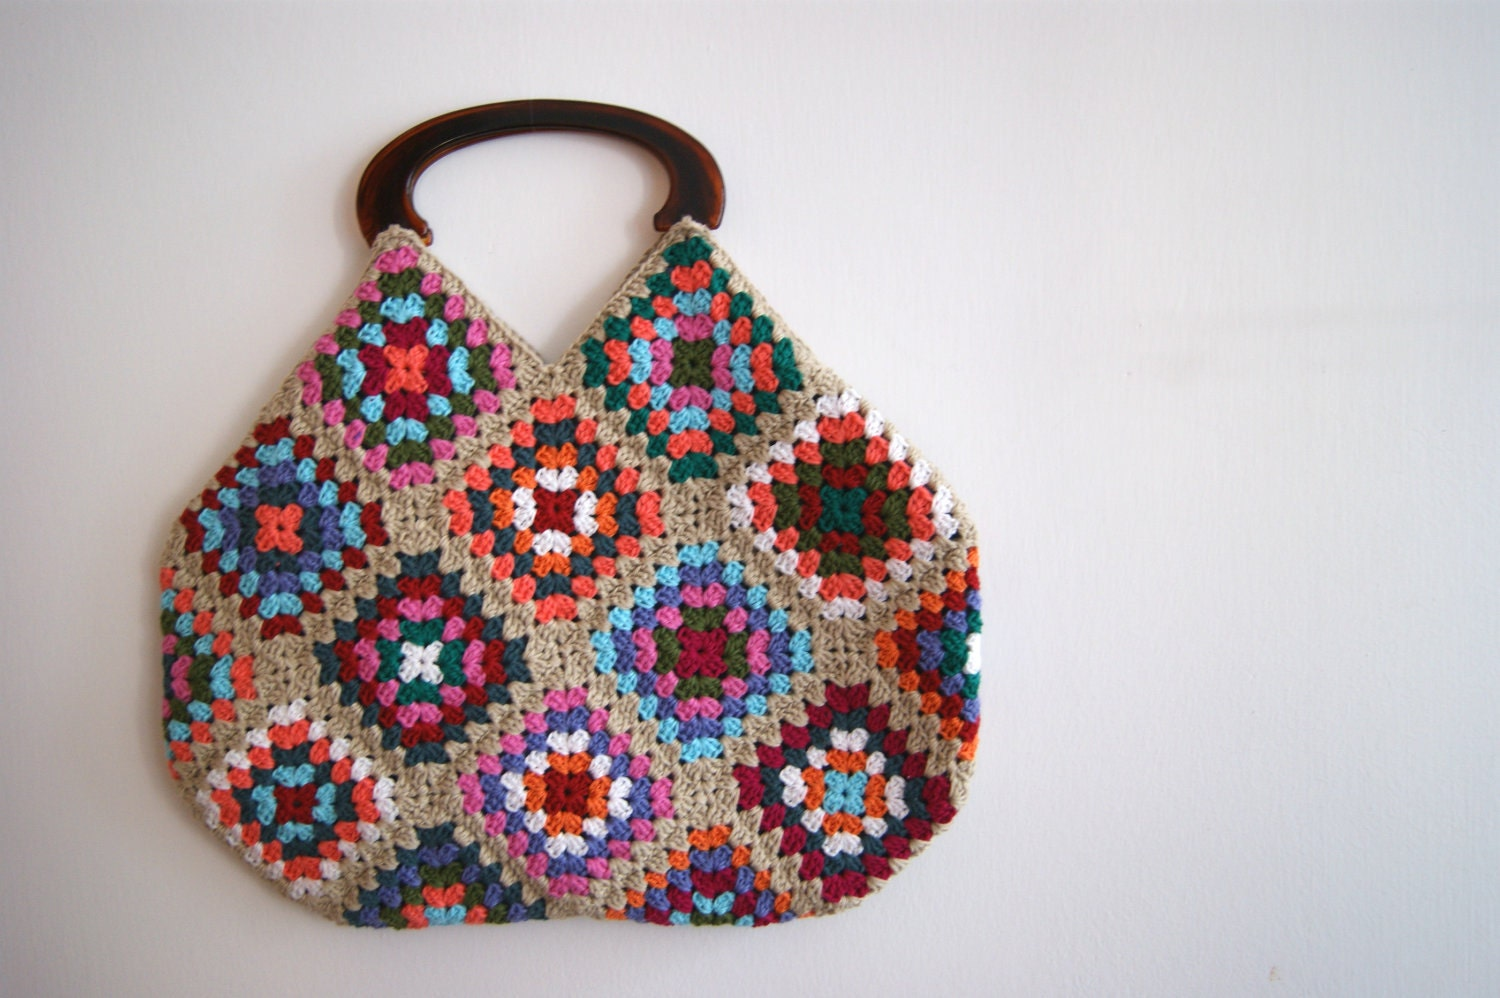 Granny Square Bag : Beige Crochet granny square bag by knittingcate on Etsy